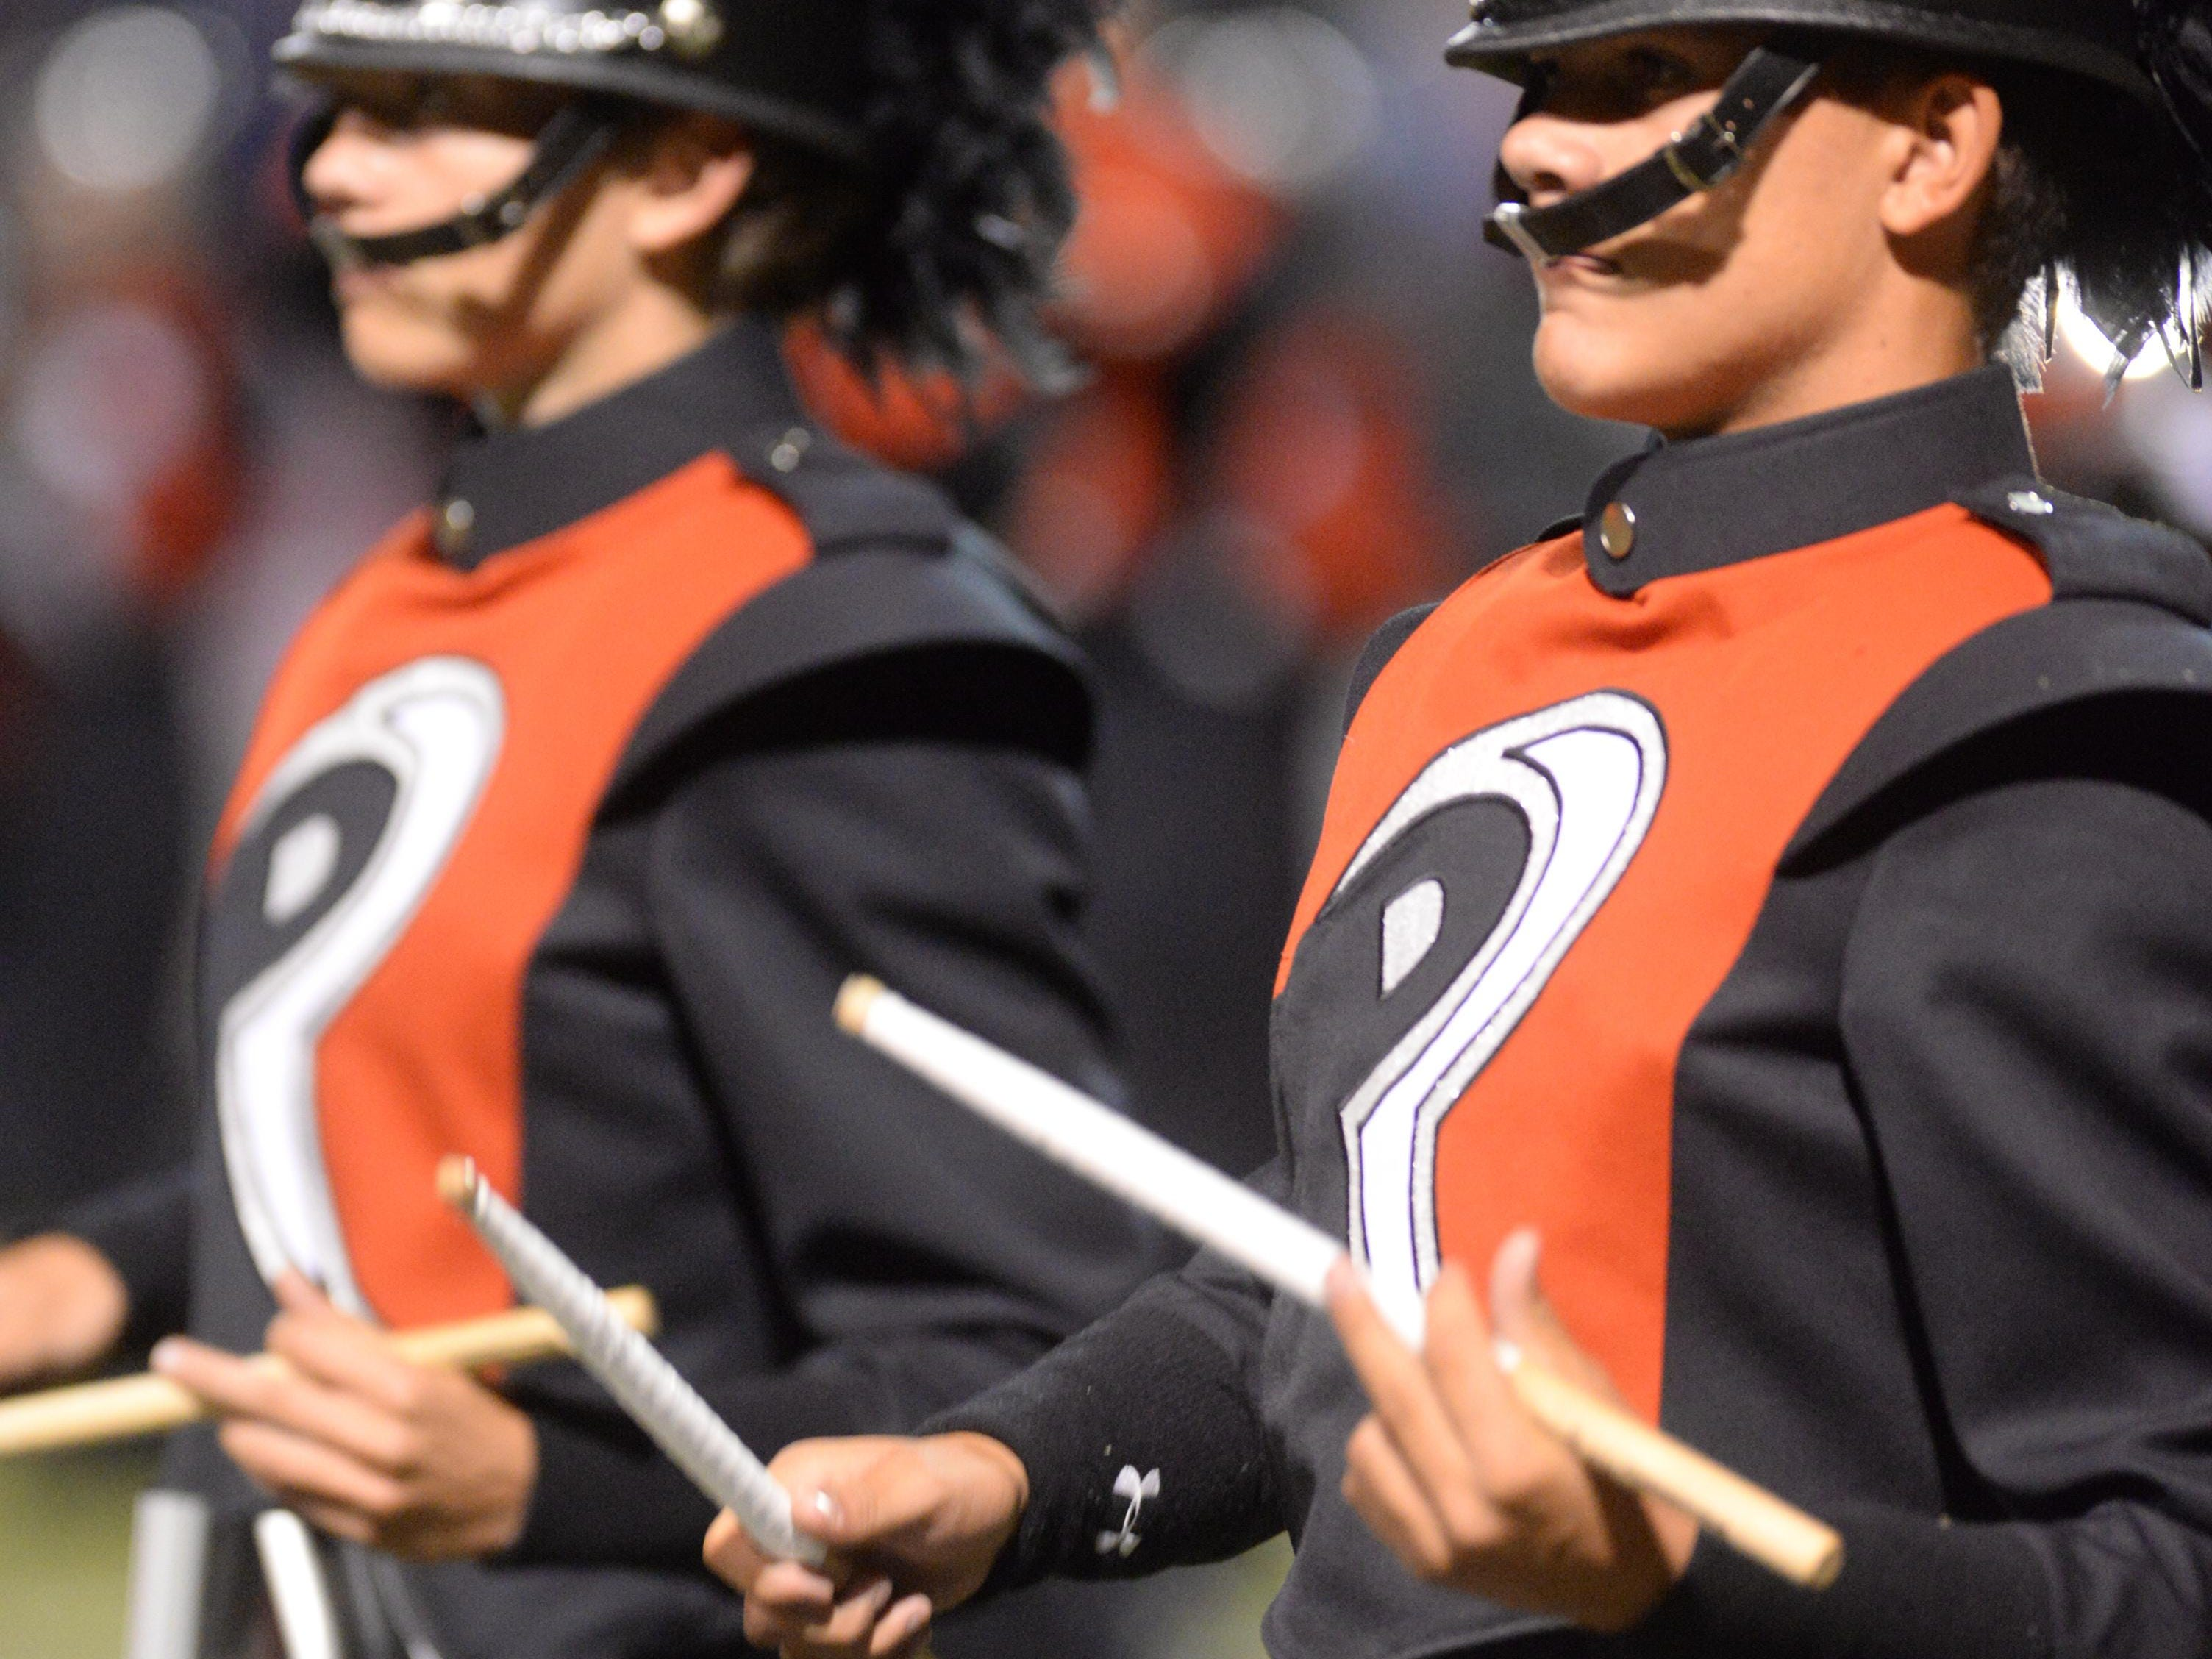 The Parkway High school marching band drummers keep beat as they perform for the crowd during their halftime show.